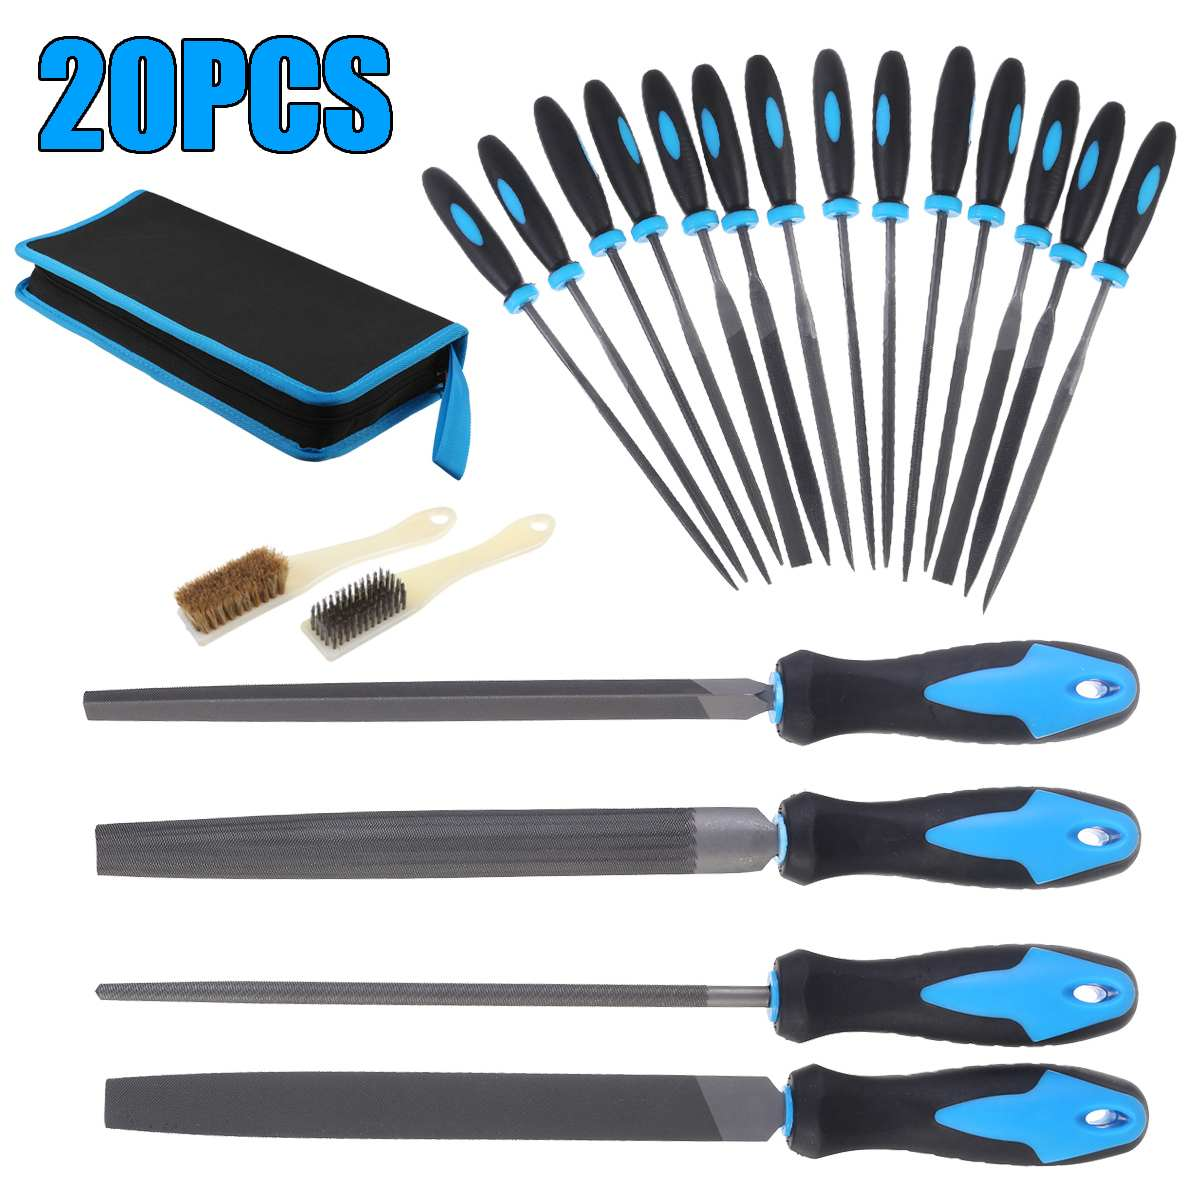 20 Pcs Set Hand File Needle File Tool T12 High Carbon Steel 200mm Metal Needle Set Wood Carving Craft Sewing Hand Files Tool